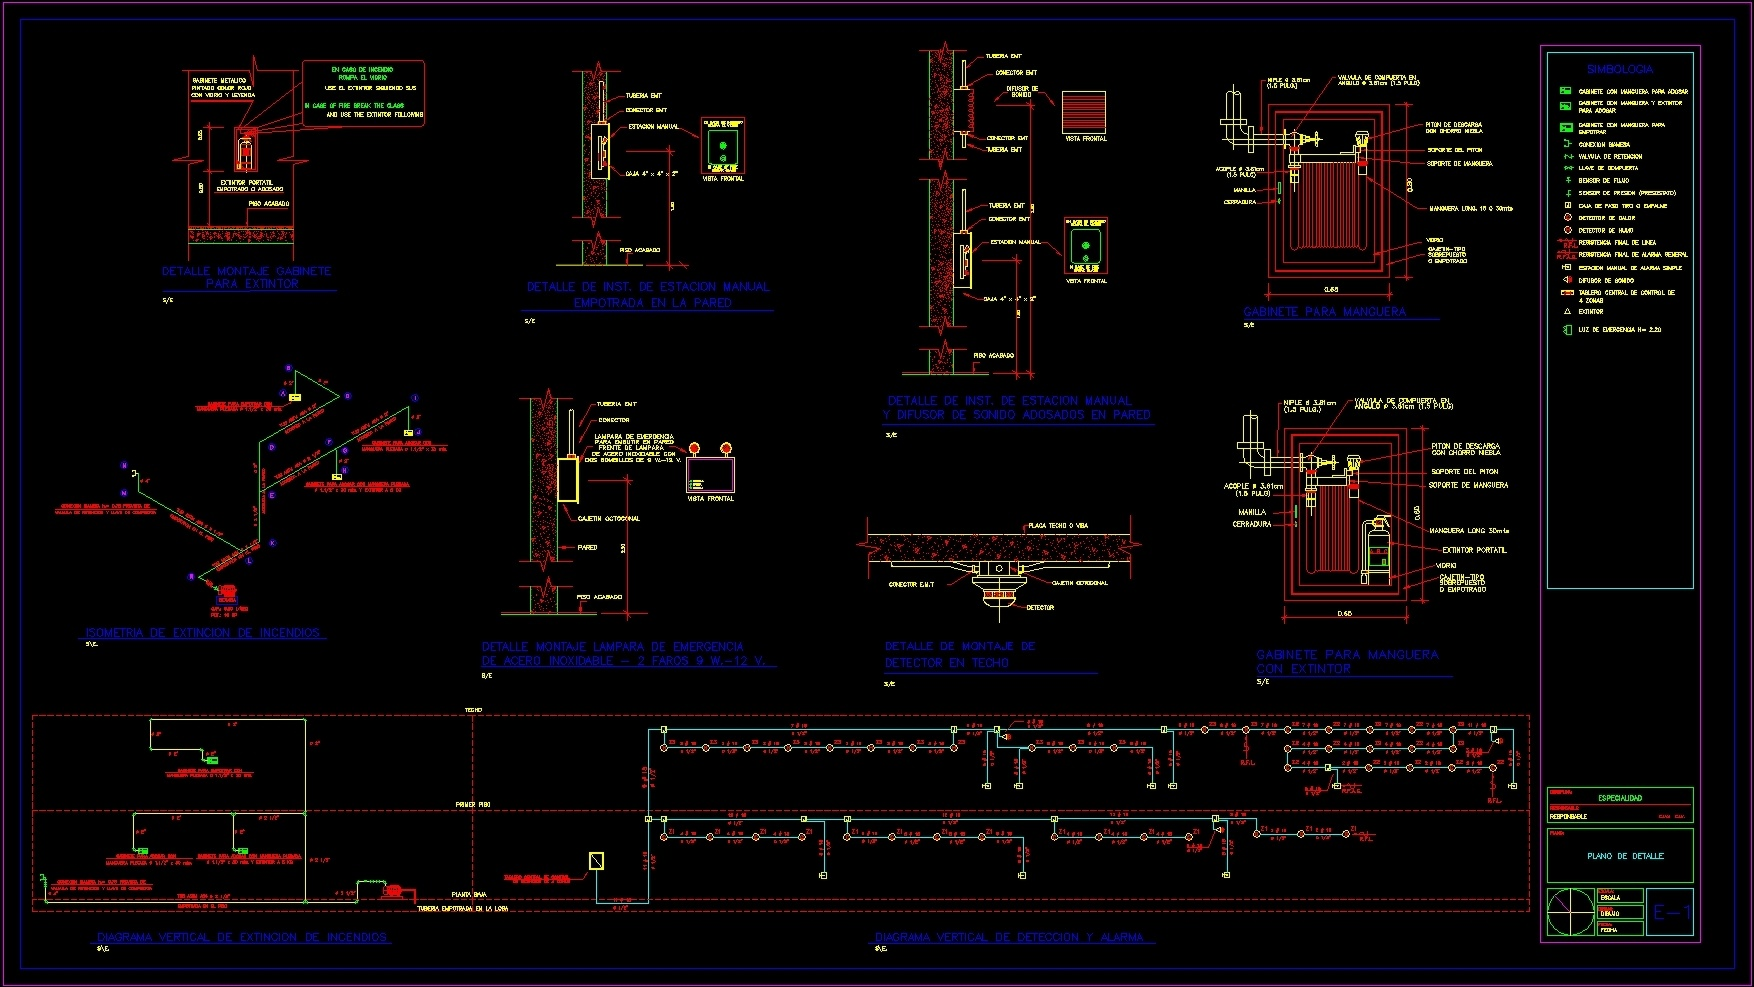 Fire Protection System DWG Block for AutoCAD